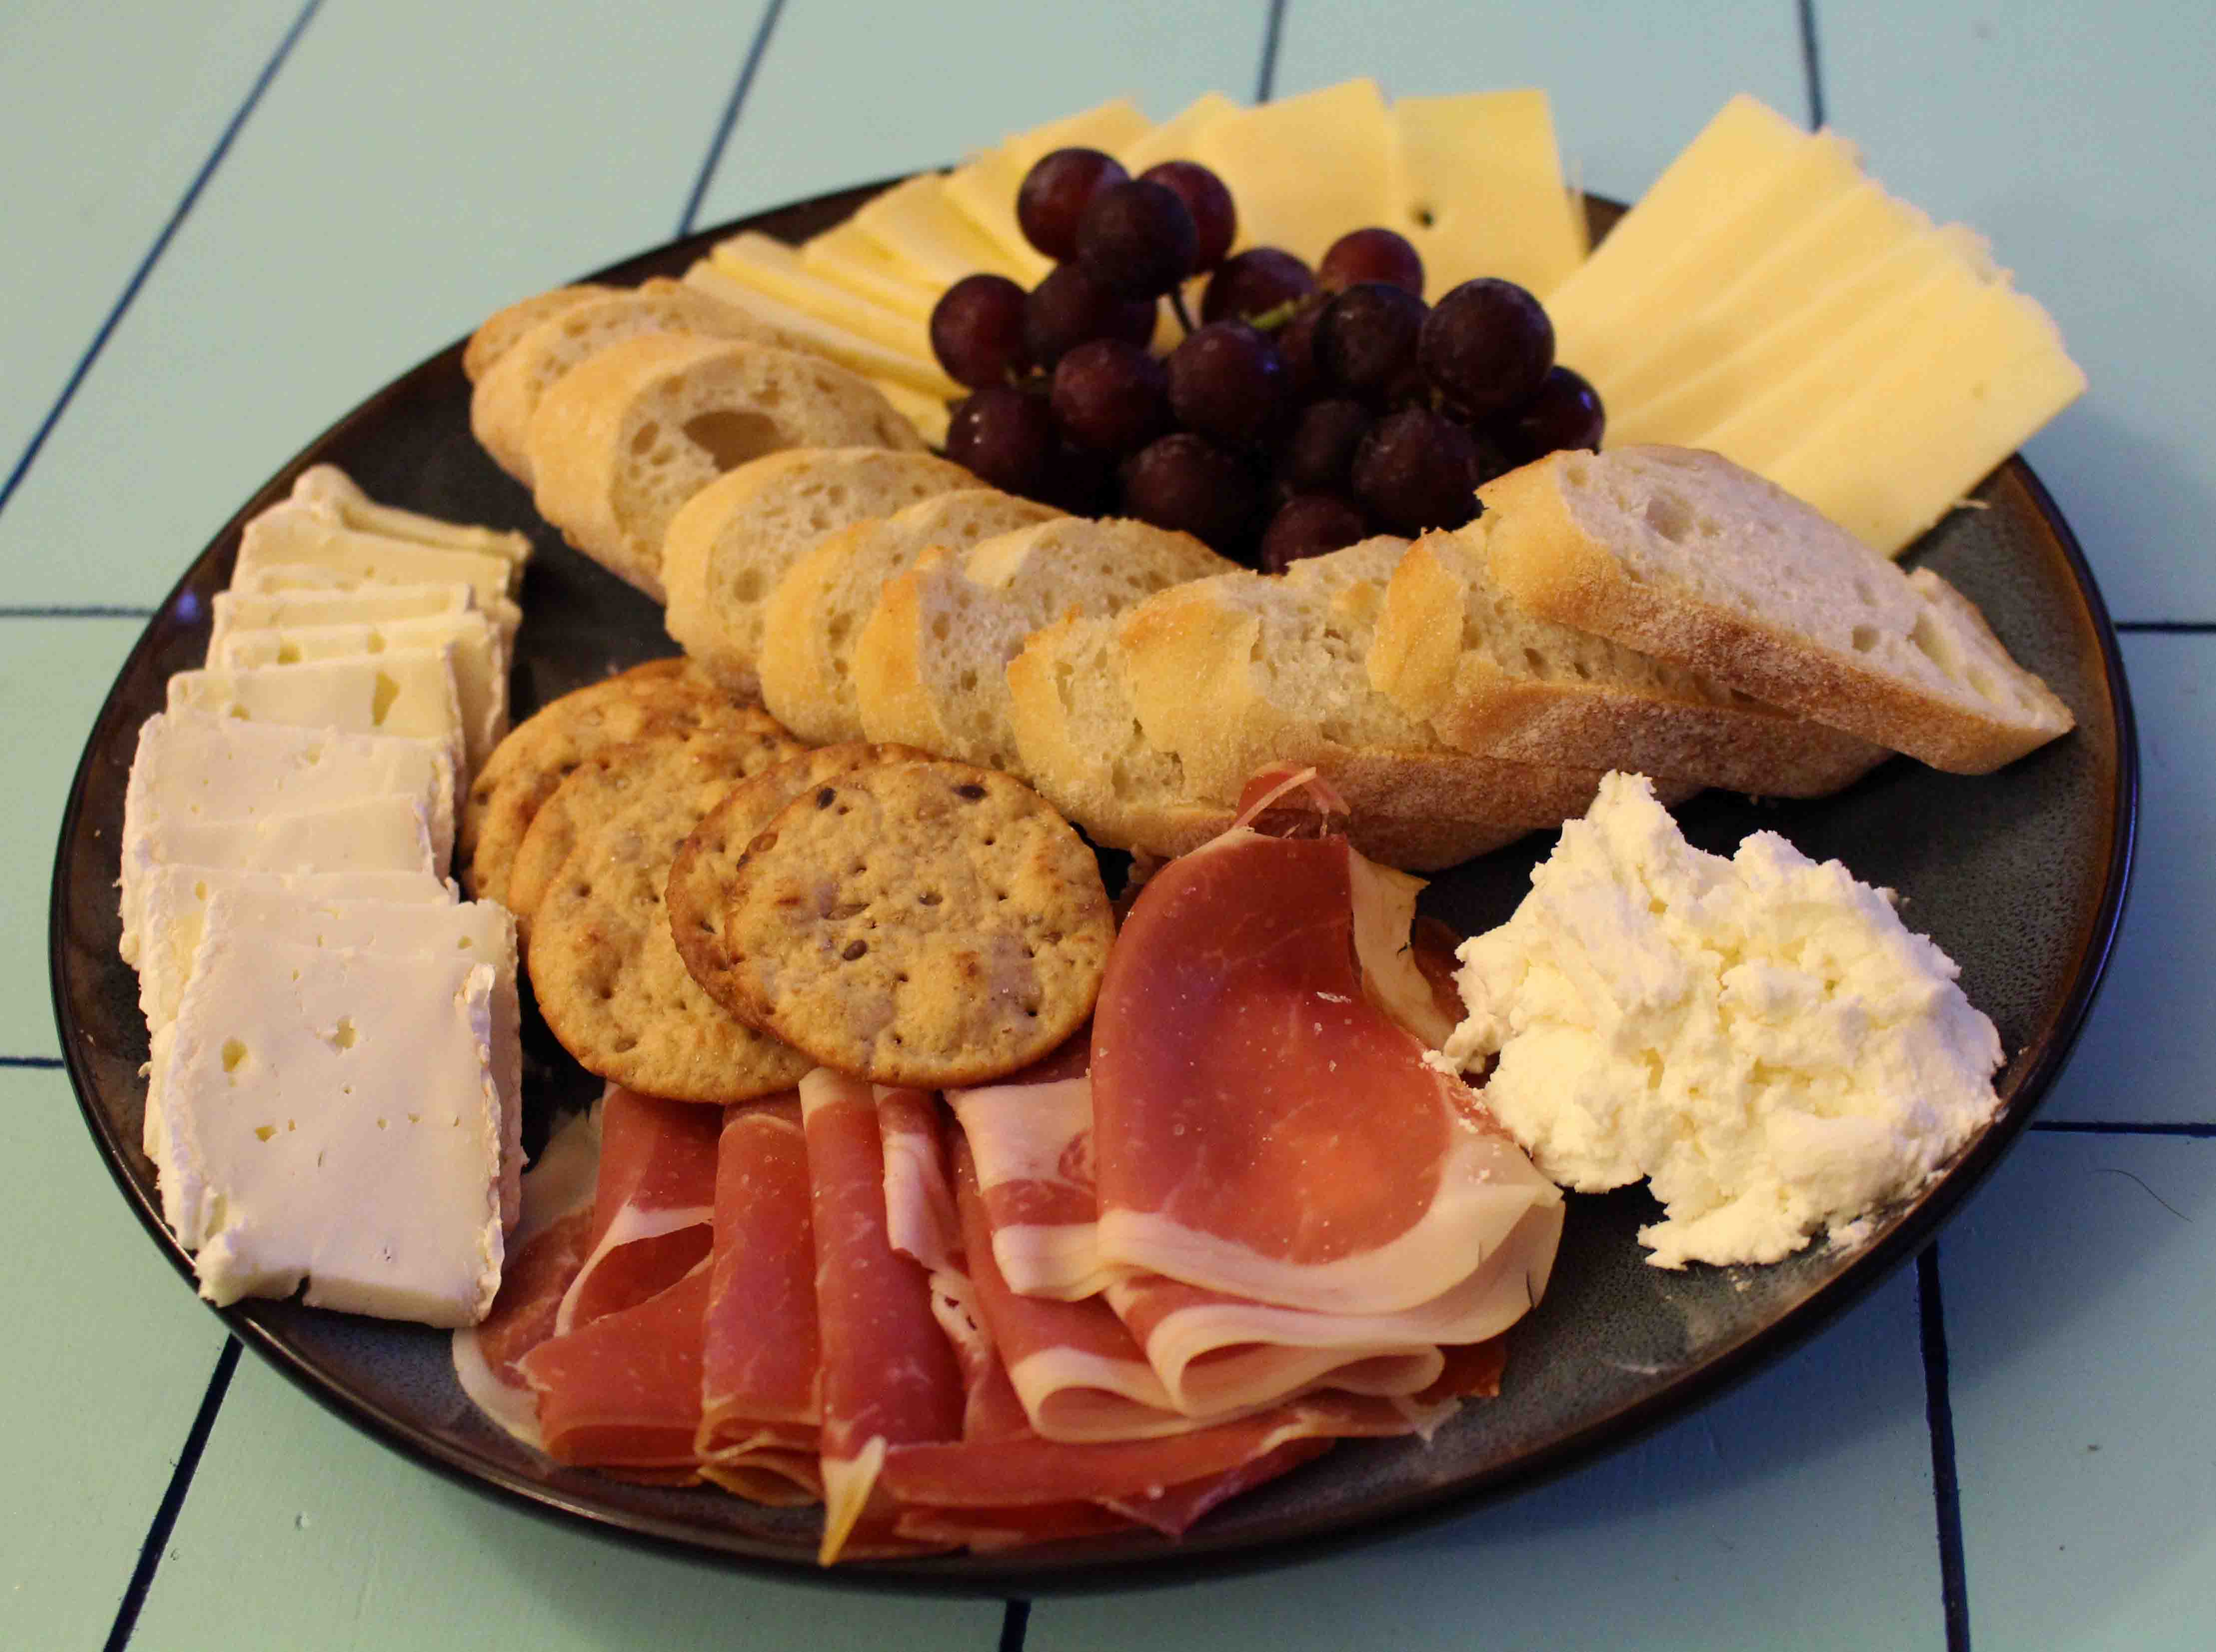 The cheese plate from our epic French feast on New Year's Eve!